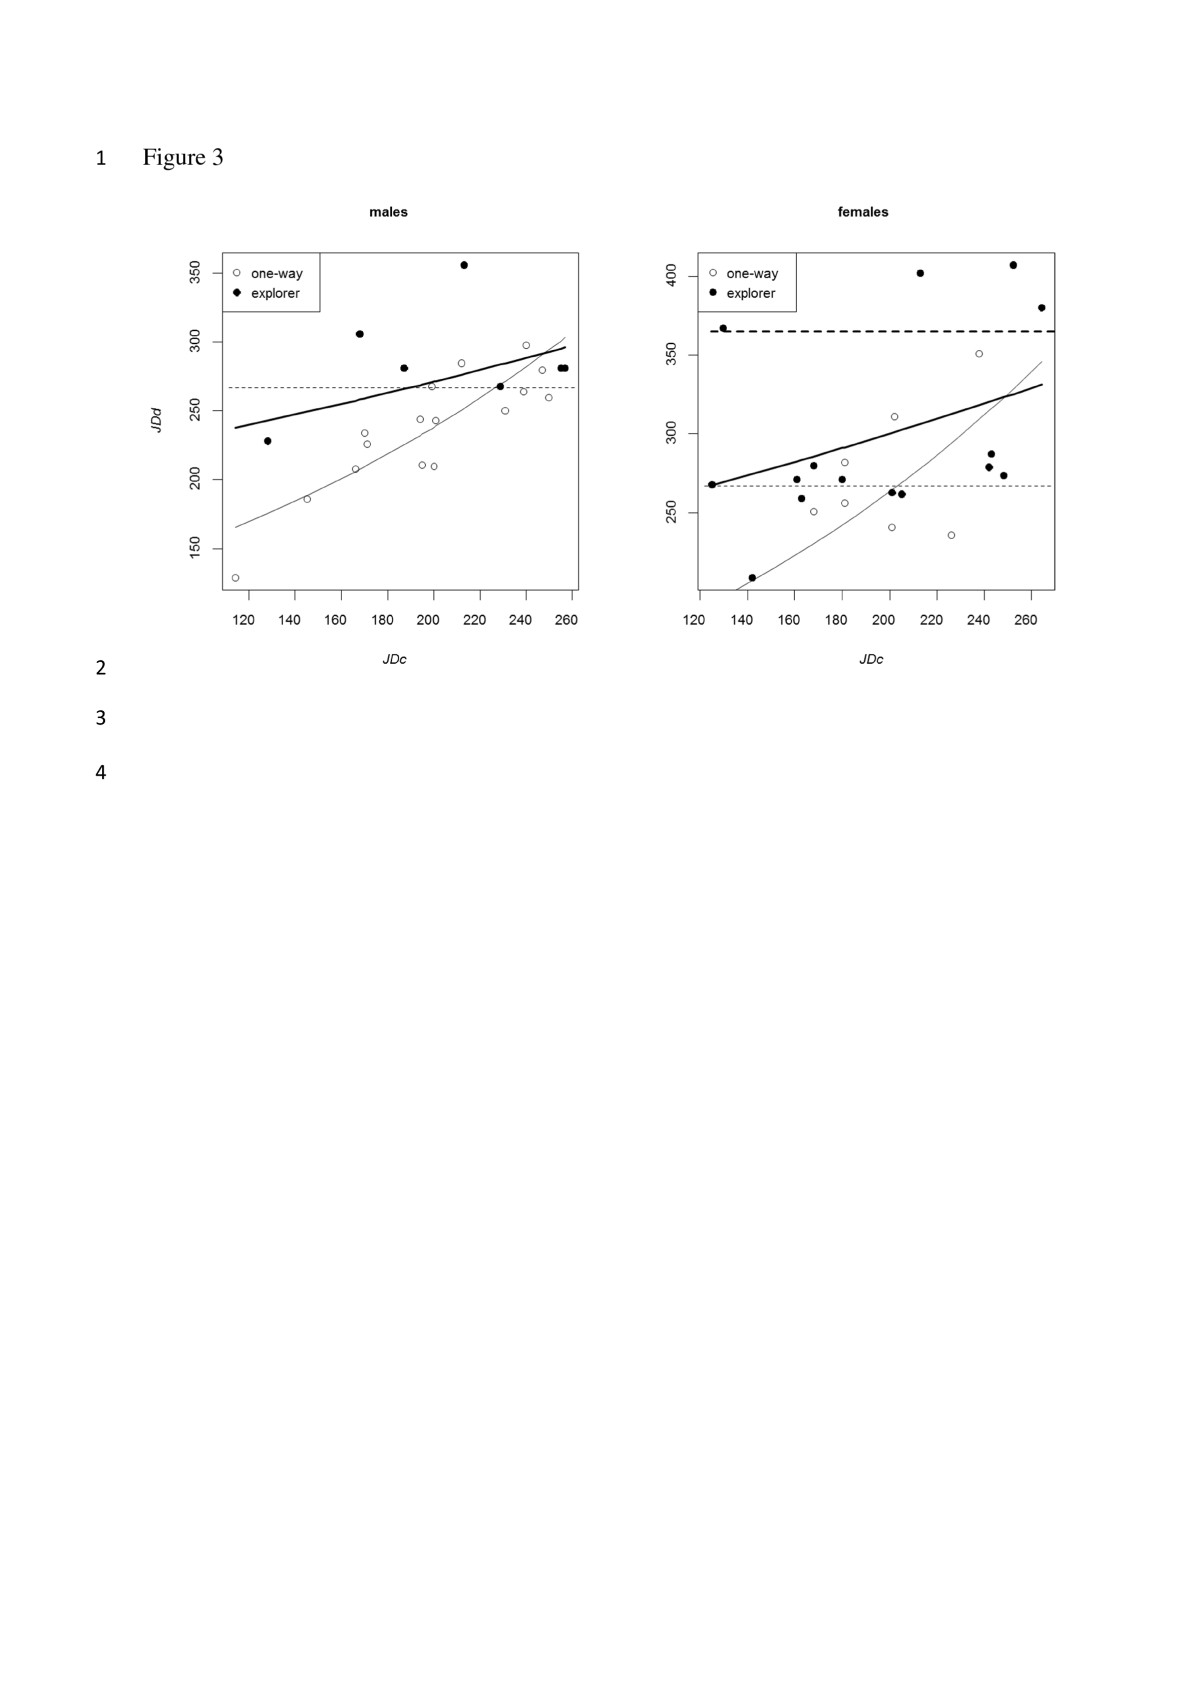 http://static-content.springer.com/image/art%3A10.1186%2F1472-6785-14-6/MediaObjects/12898_2013_Article_271_Fig3_HTML.jpg